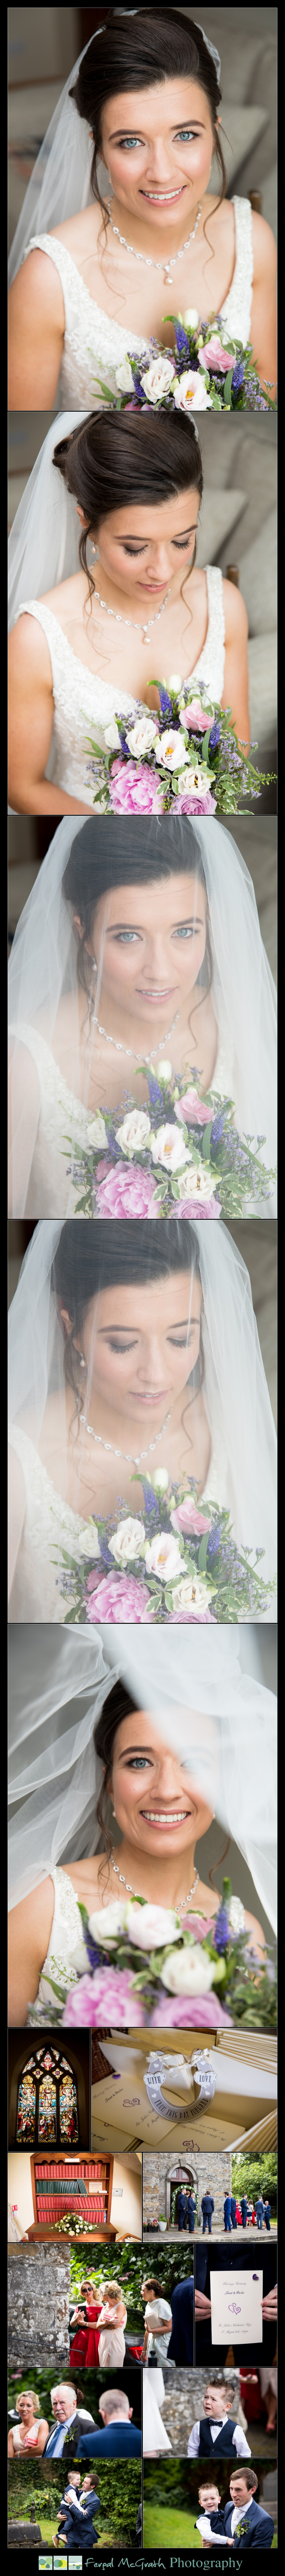 Clayton Hotel Sligo Wedding stunning sligo bride portraits